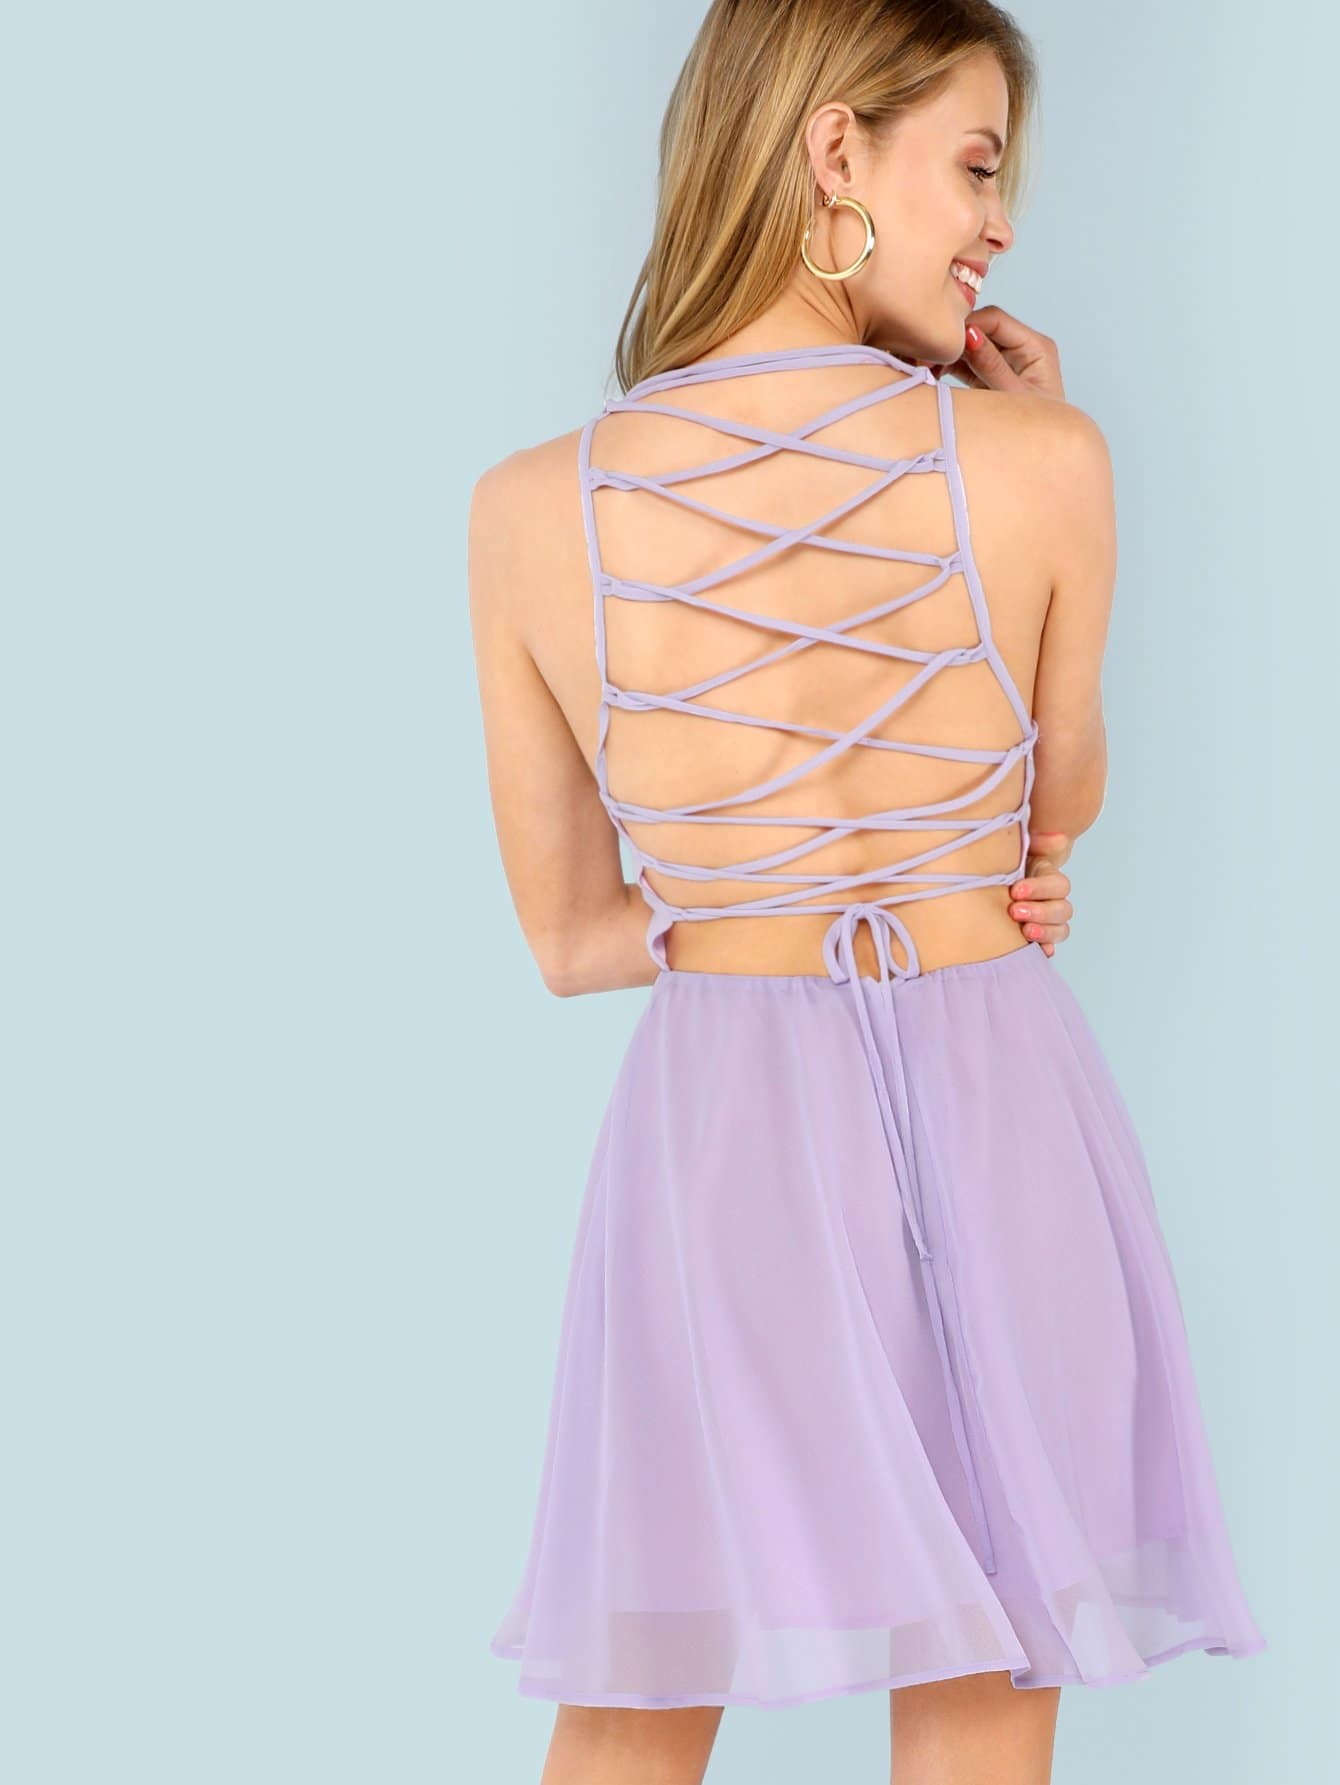 Lace Up Open Back Flare Halter Dress lace up open back flare jumpsuit